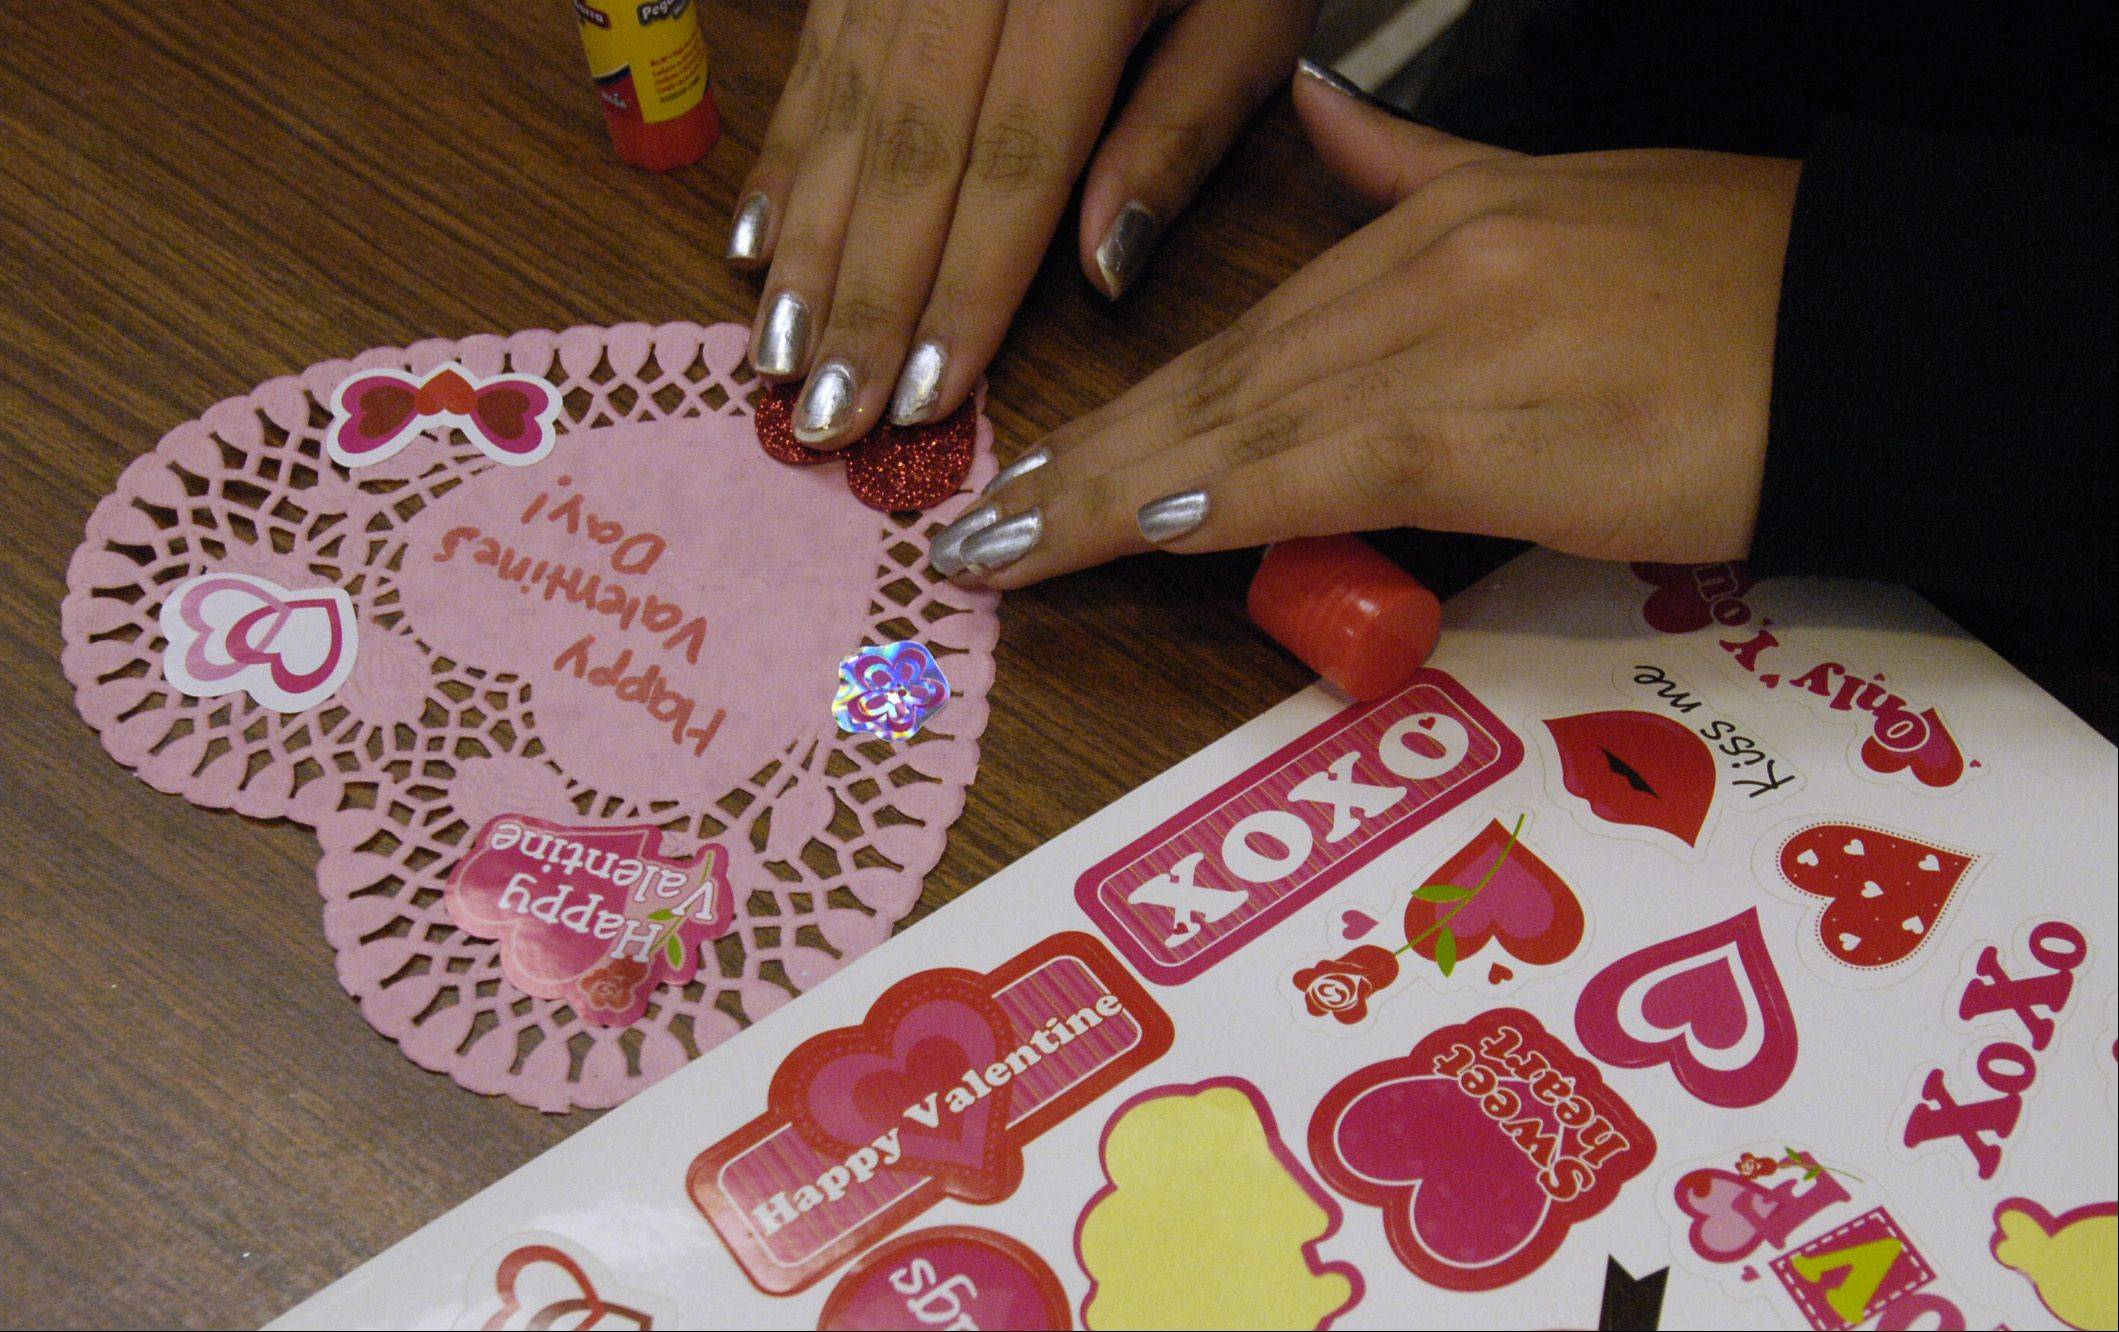 Members of clubs and teams at the Glenbard District 87 high schools often make cards to be distributed through the Valentines for Veterans project.